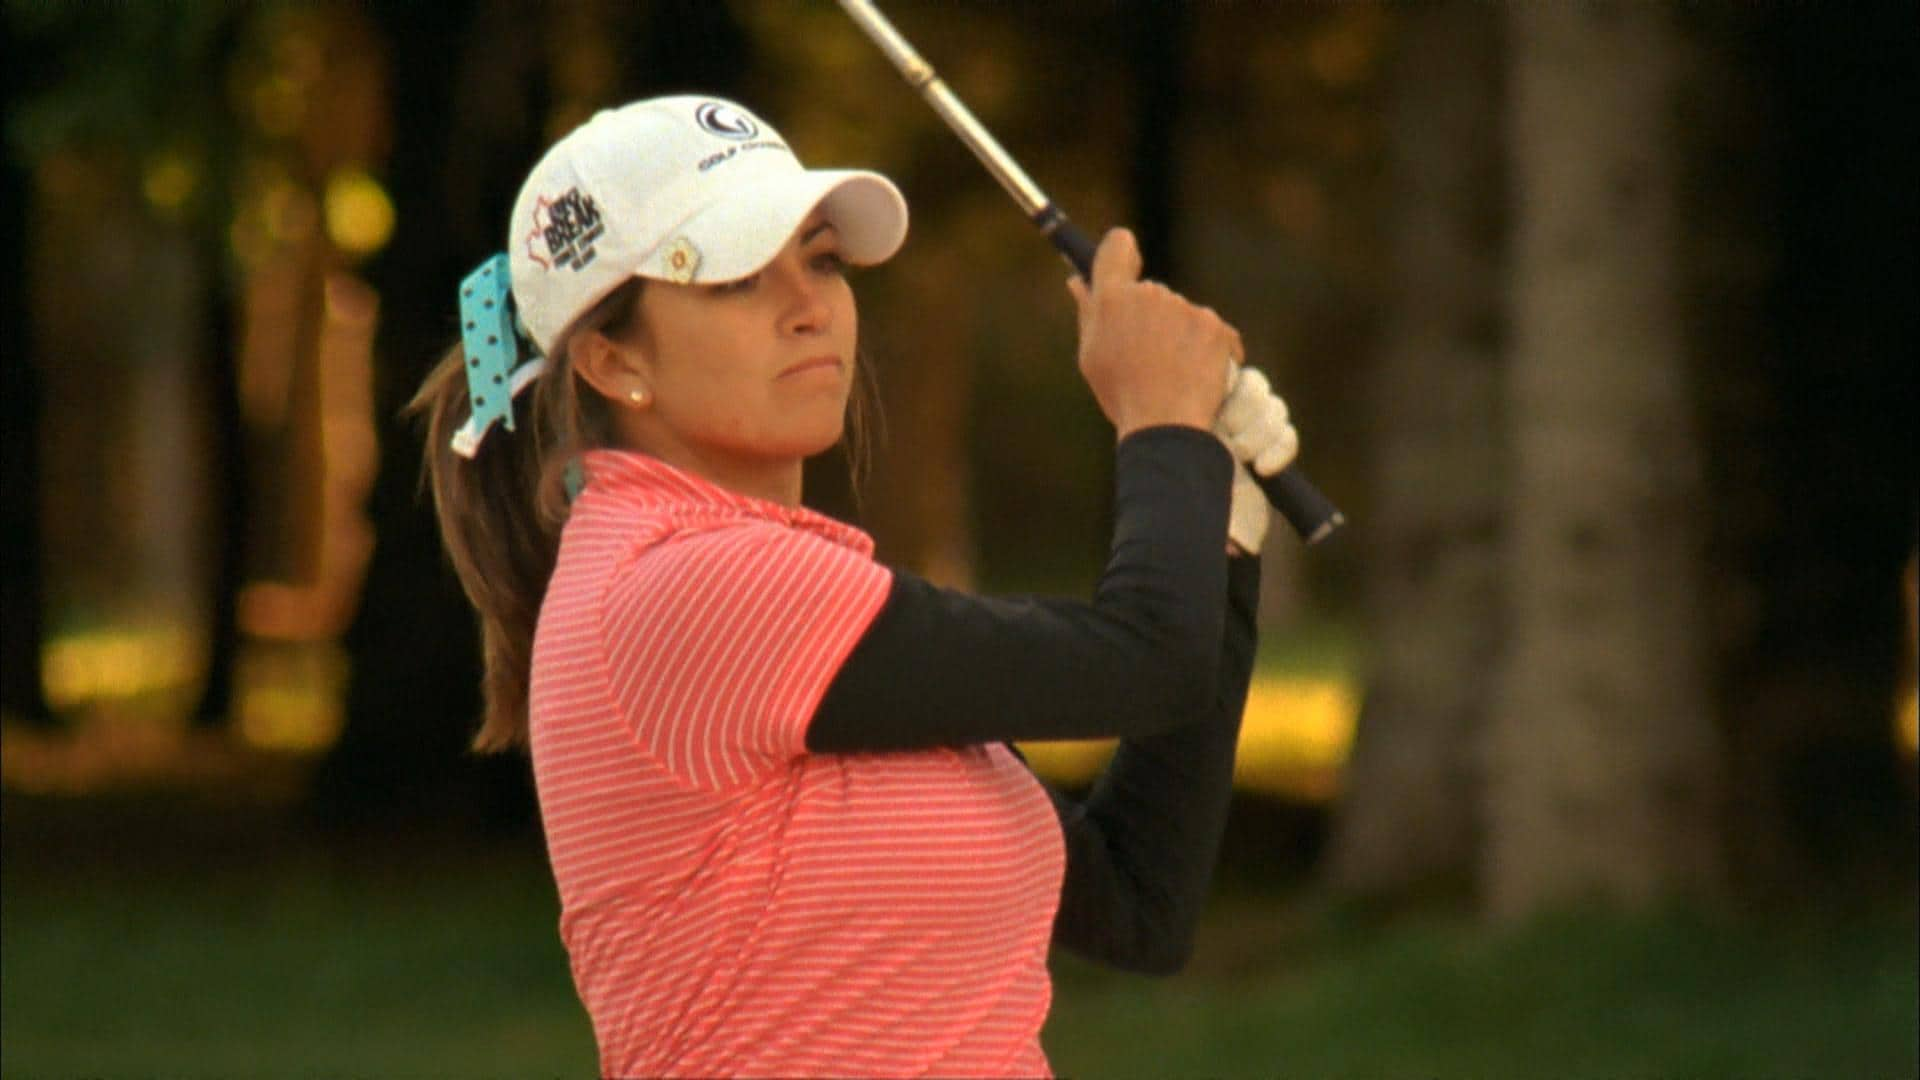 Gerina Piller big break